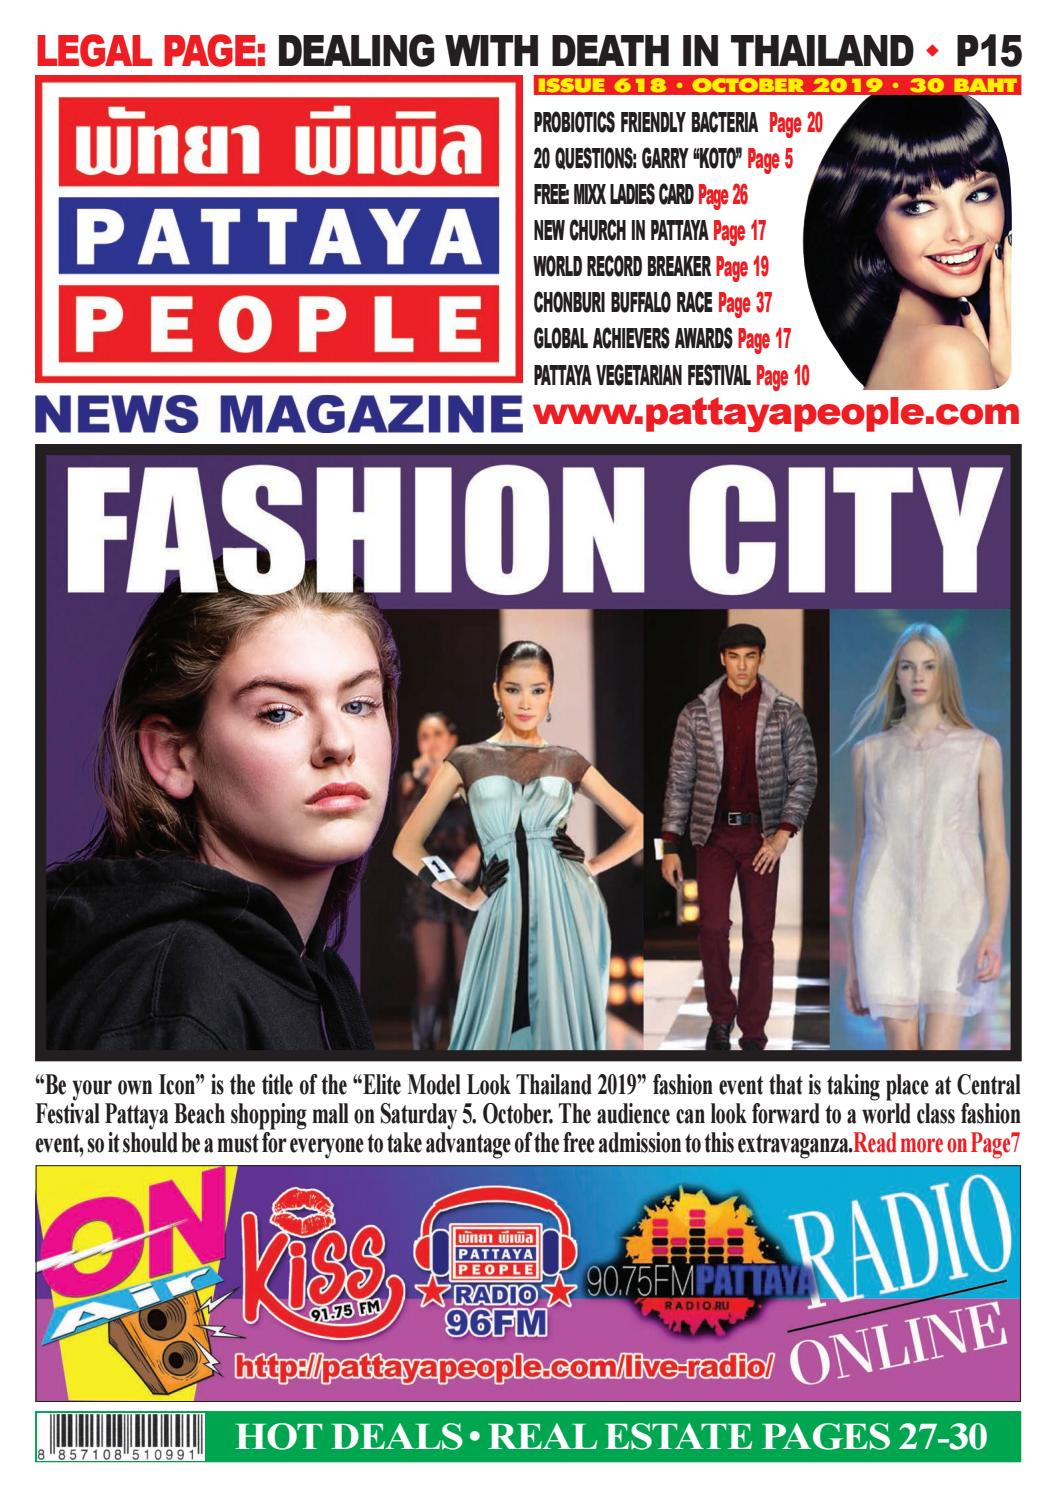 Pattaya People News Magazine 618 by PATTAYA PEOPLE NEWS